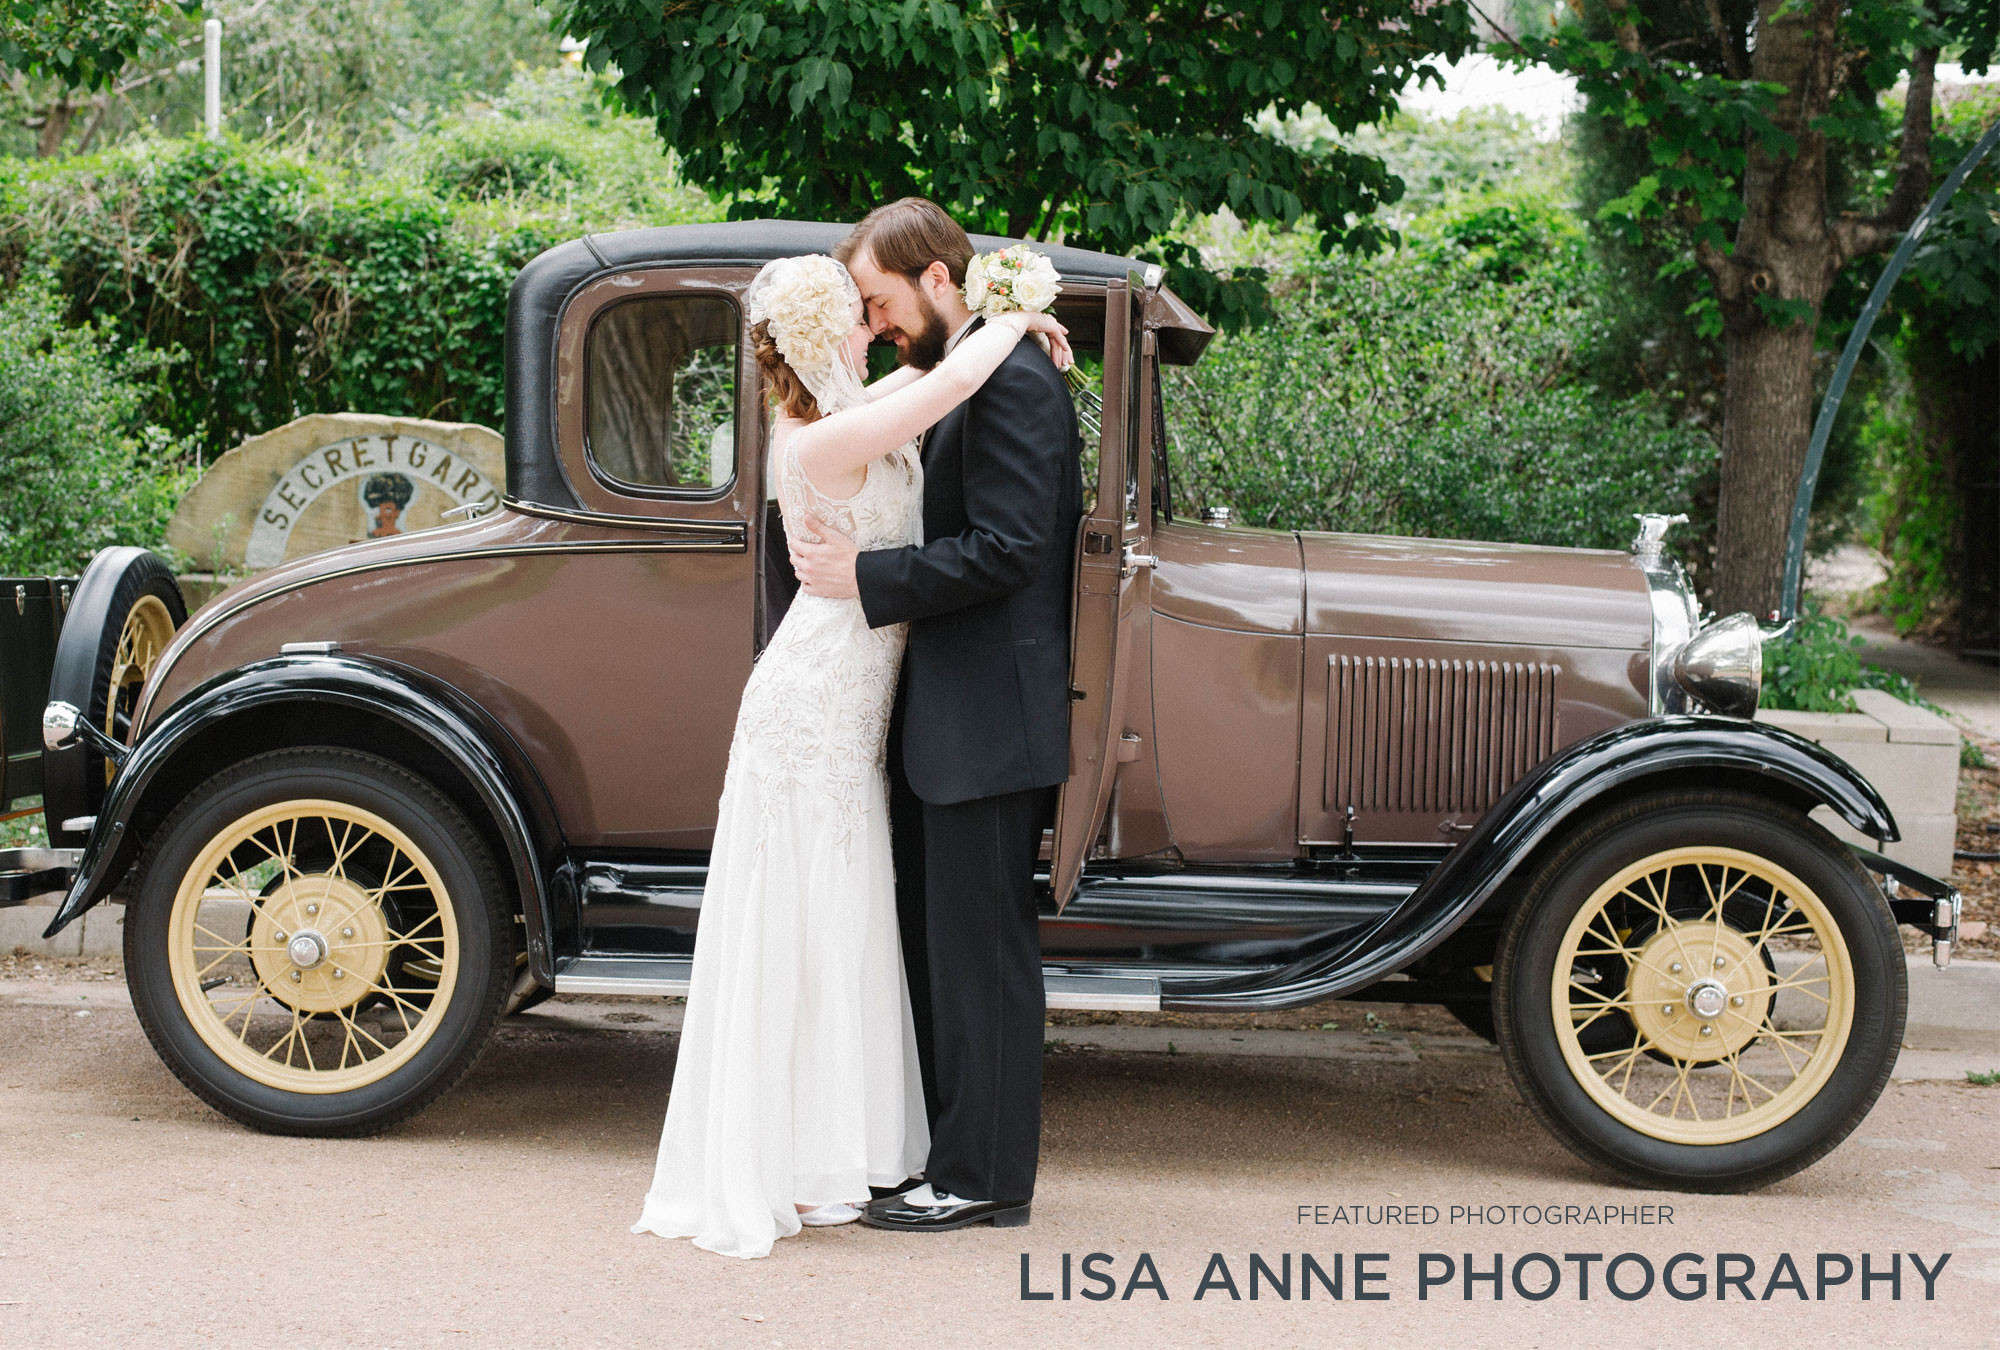 LisaAnne Photography - Featured Photographer